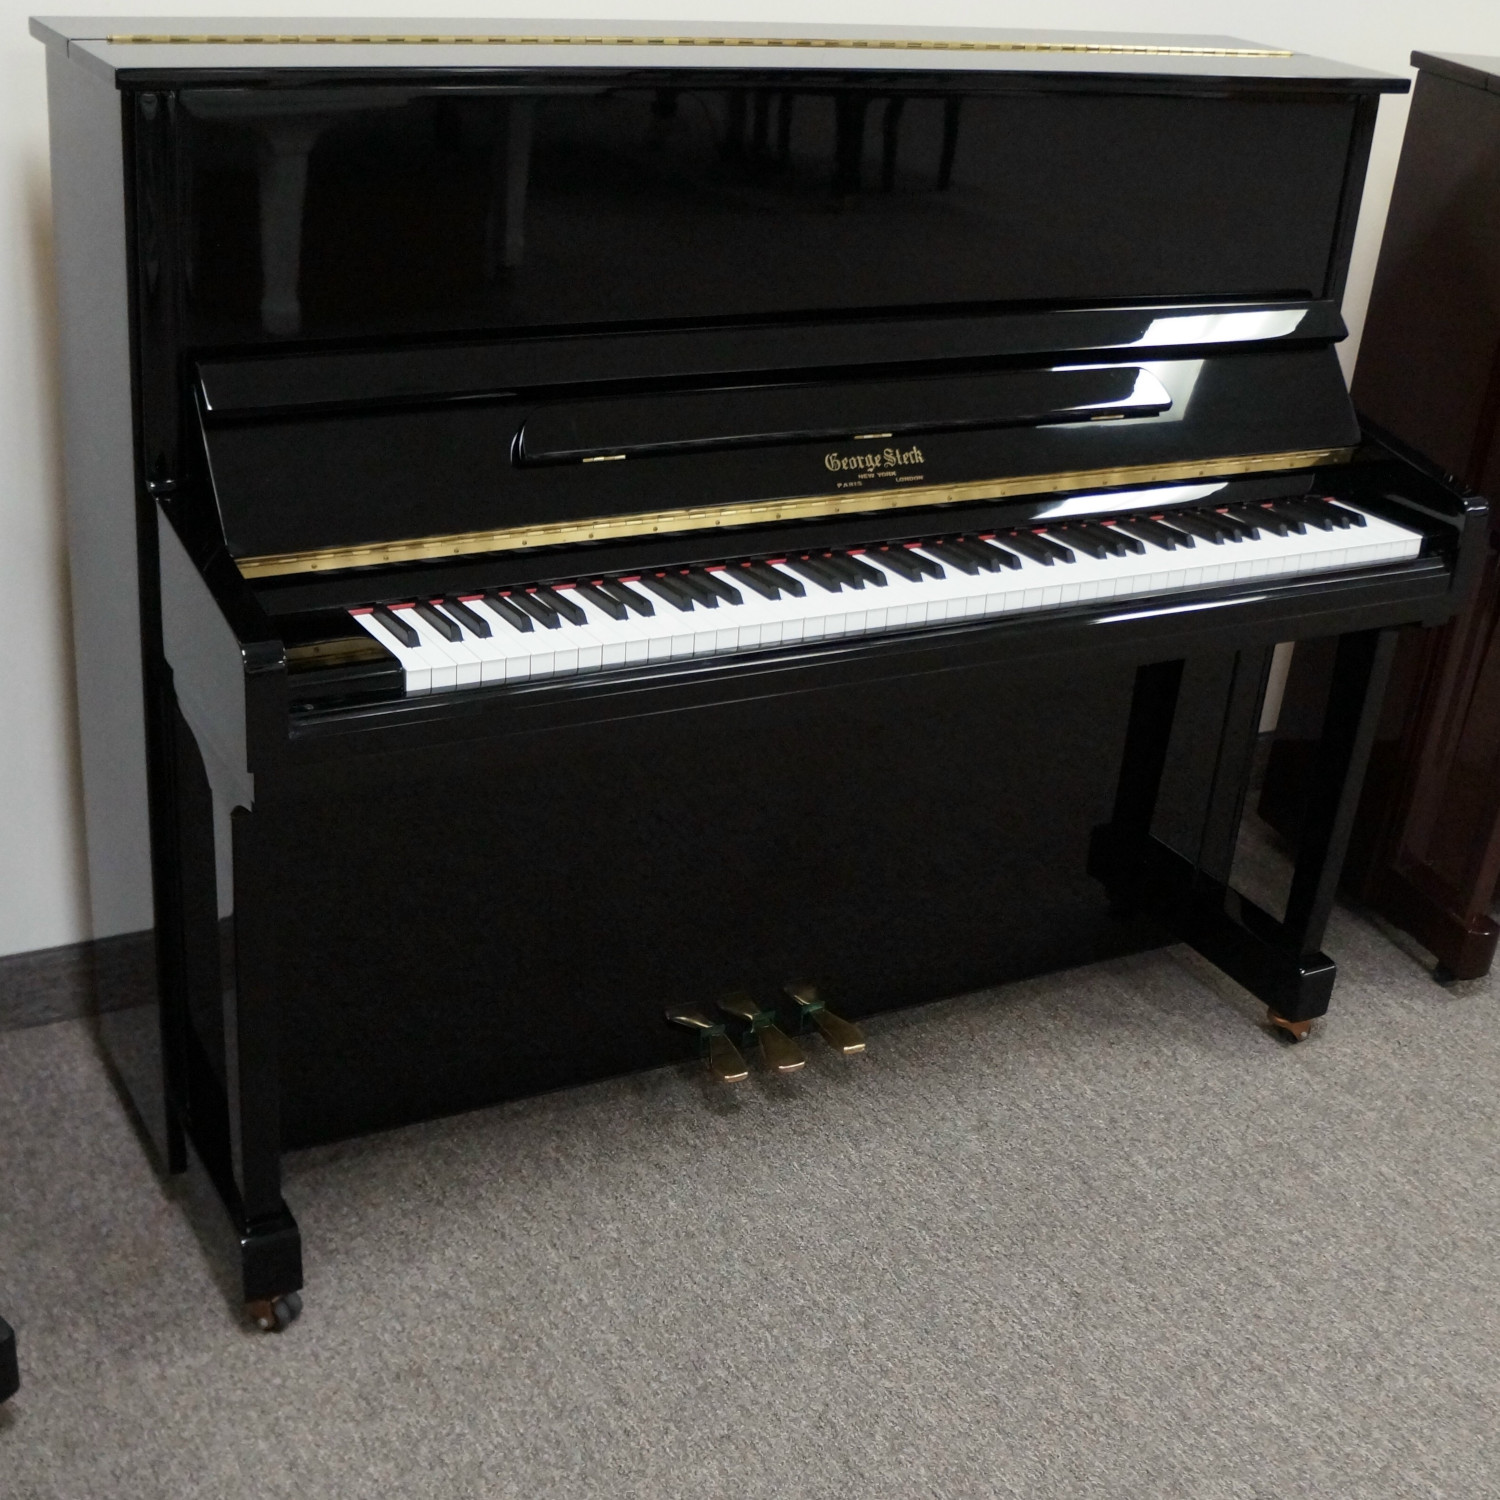 George Steck Professional Studio Piano